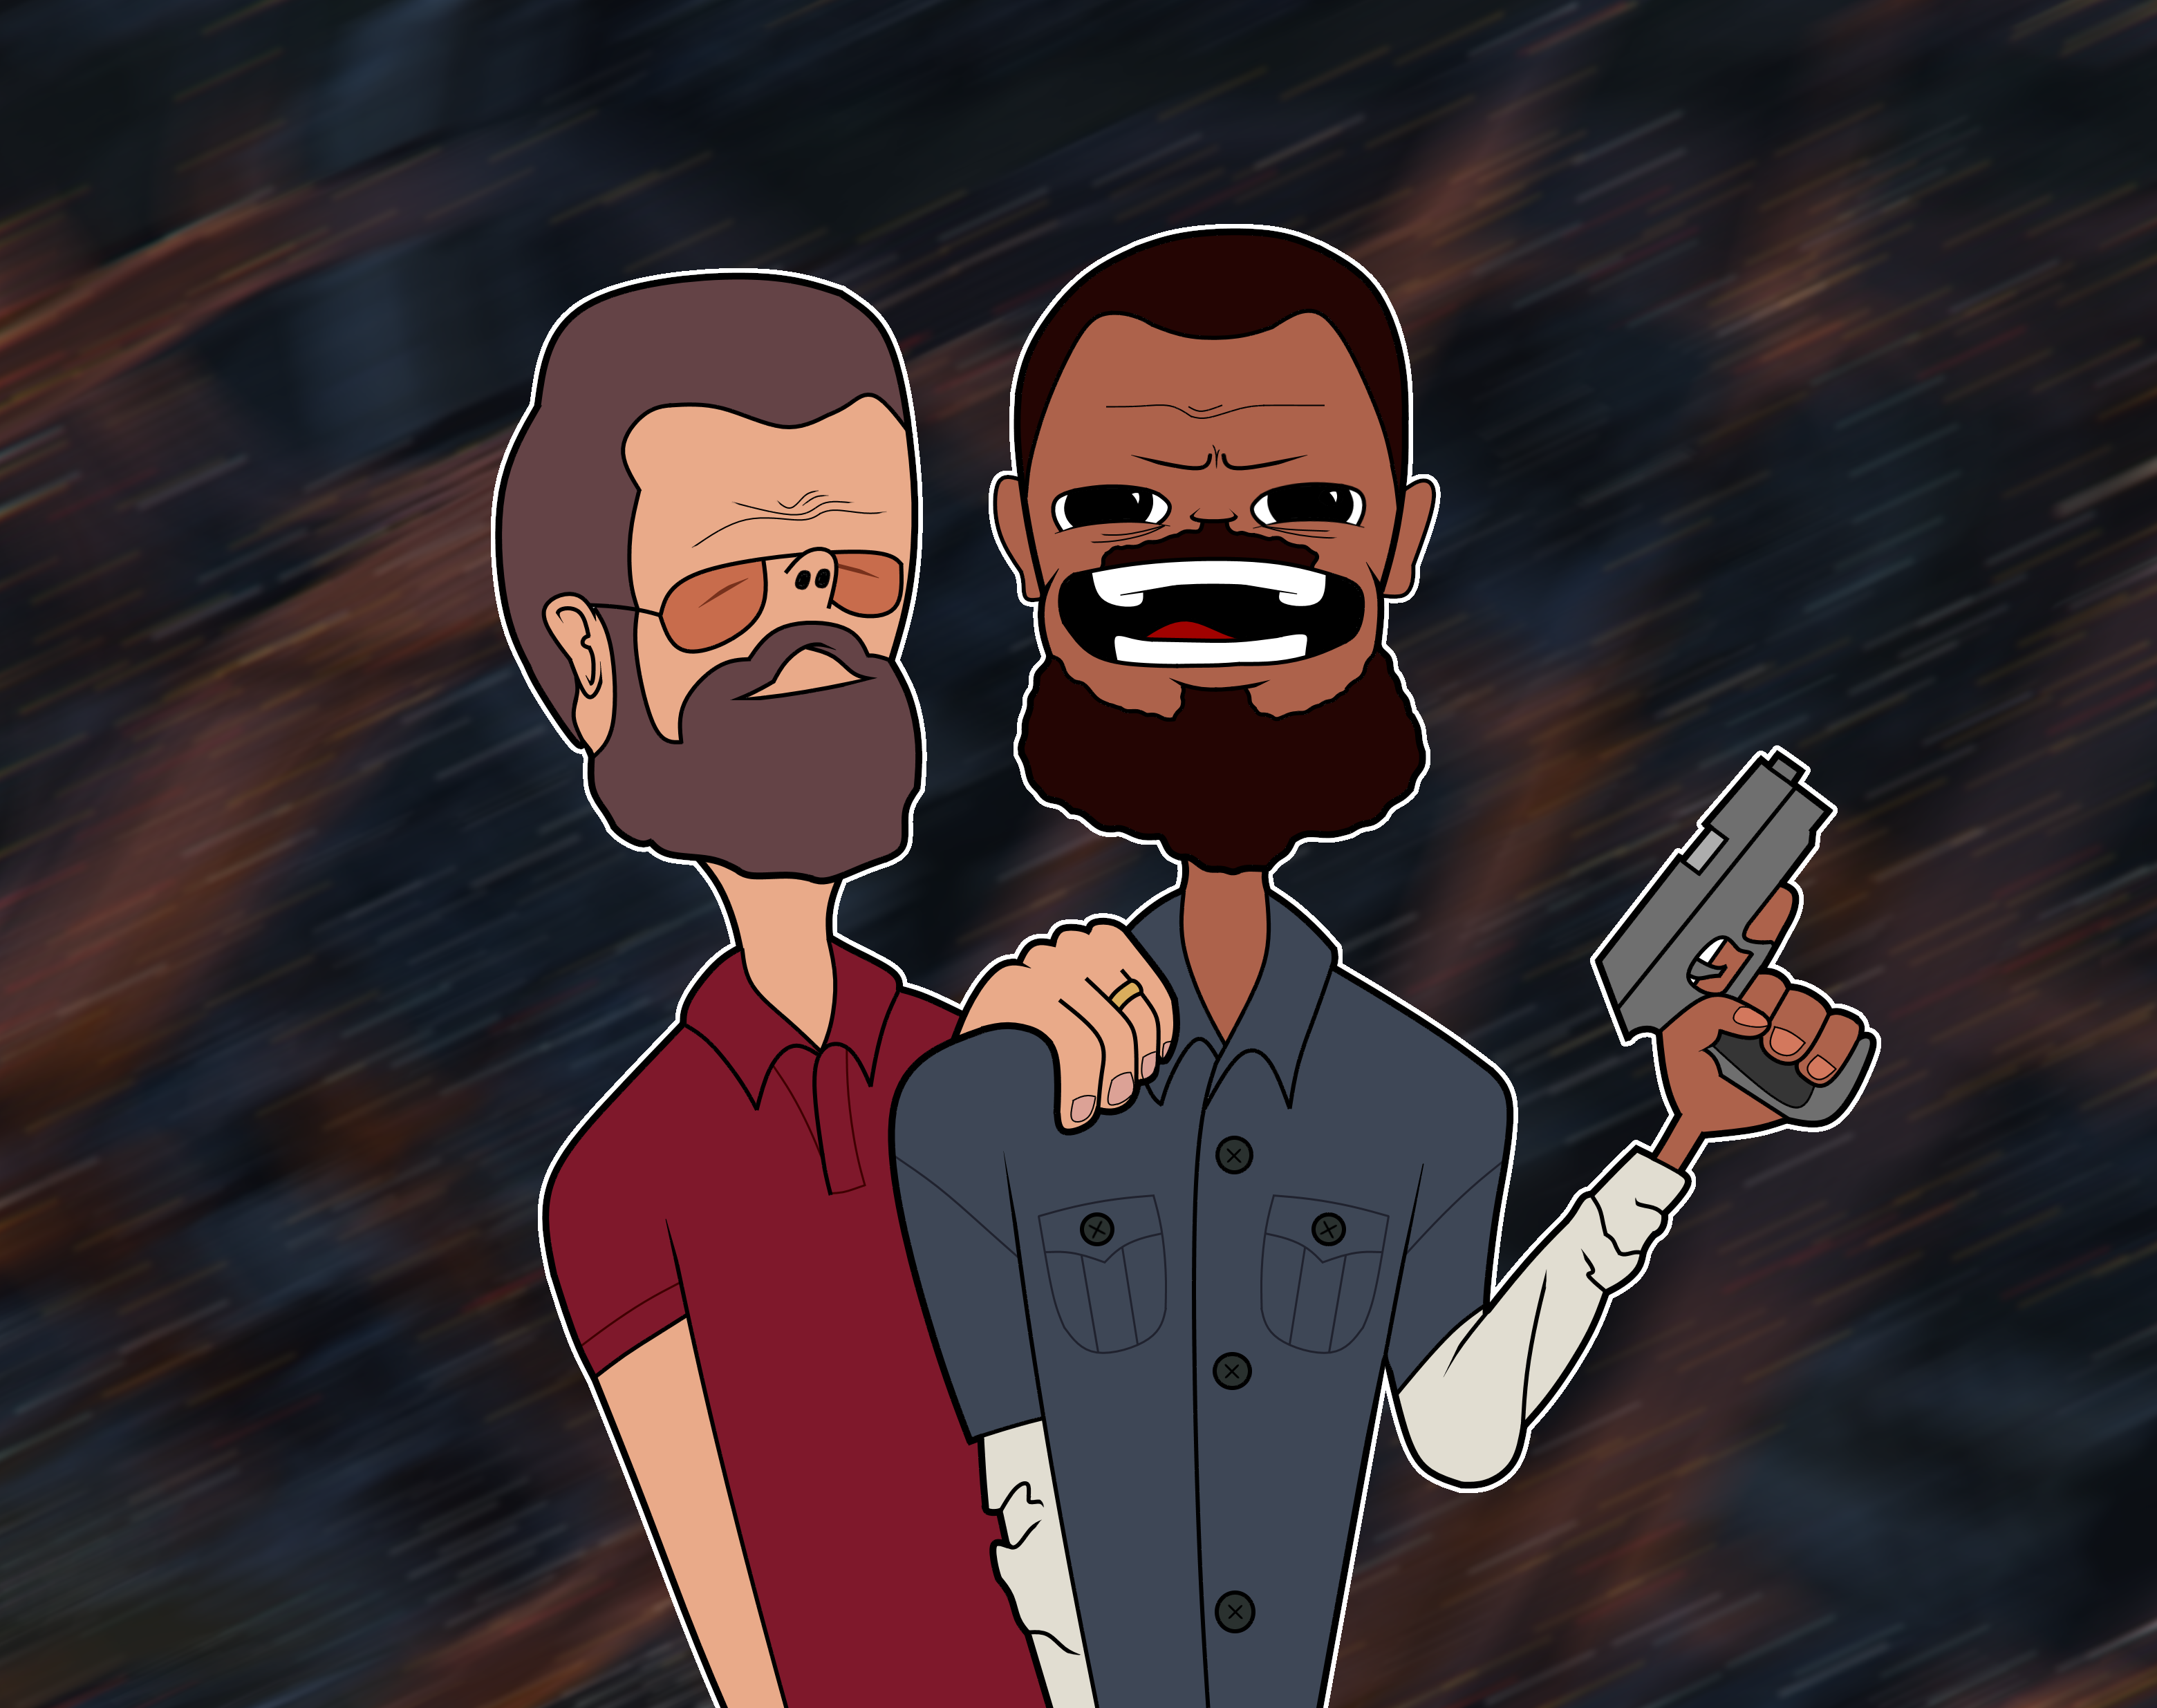 Gta 5 Michael and Franklin by Lellc on Newgrounds